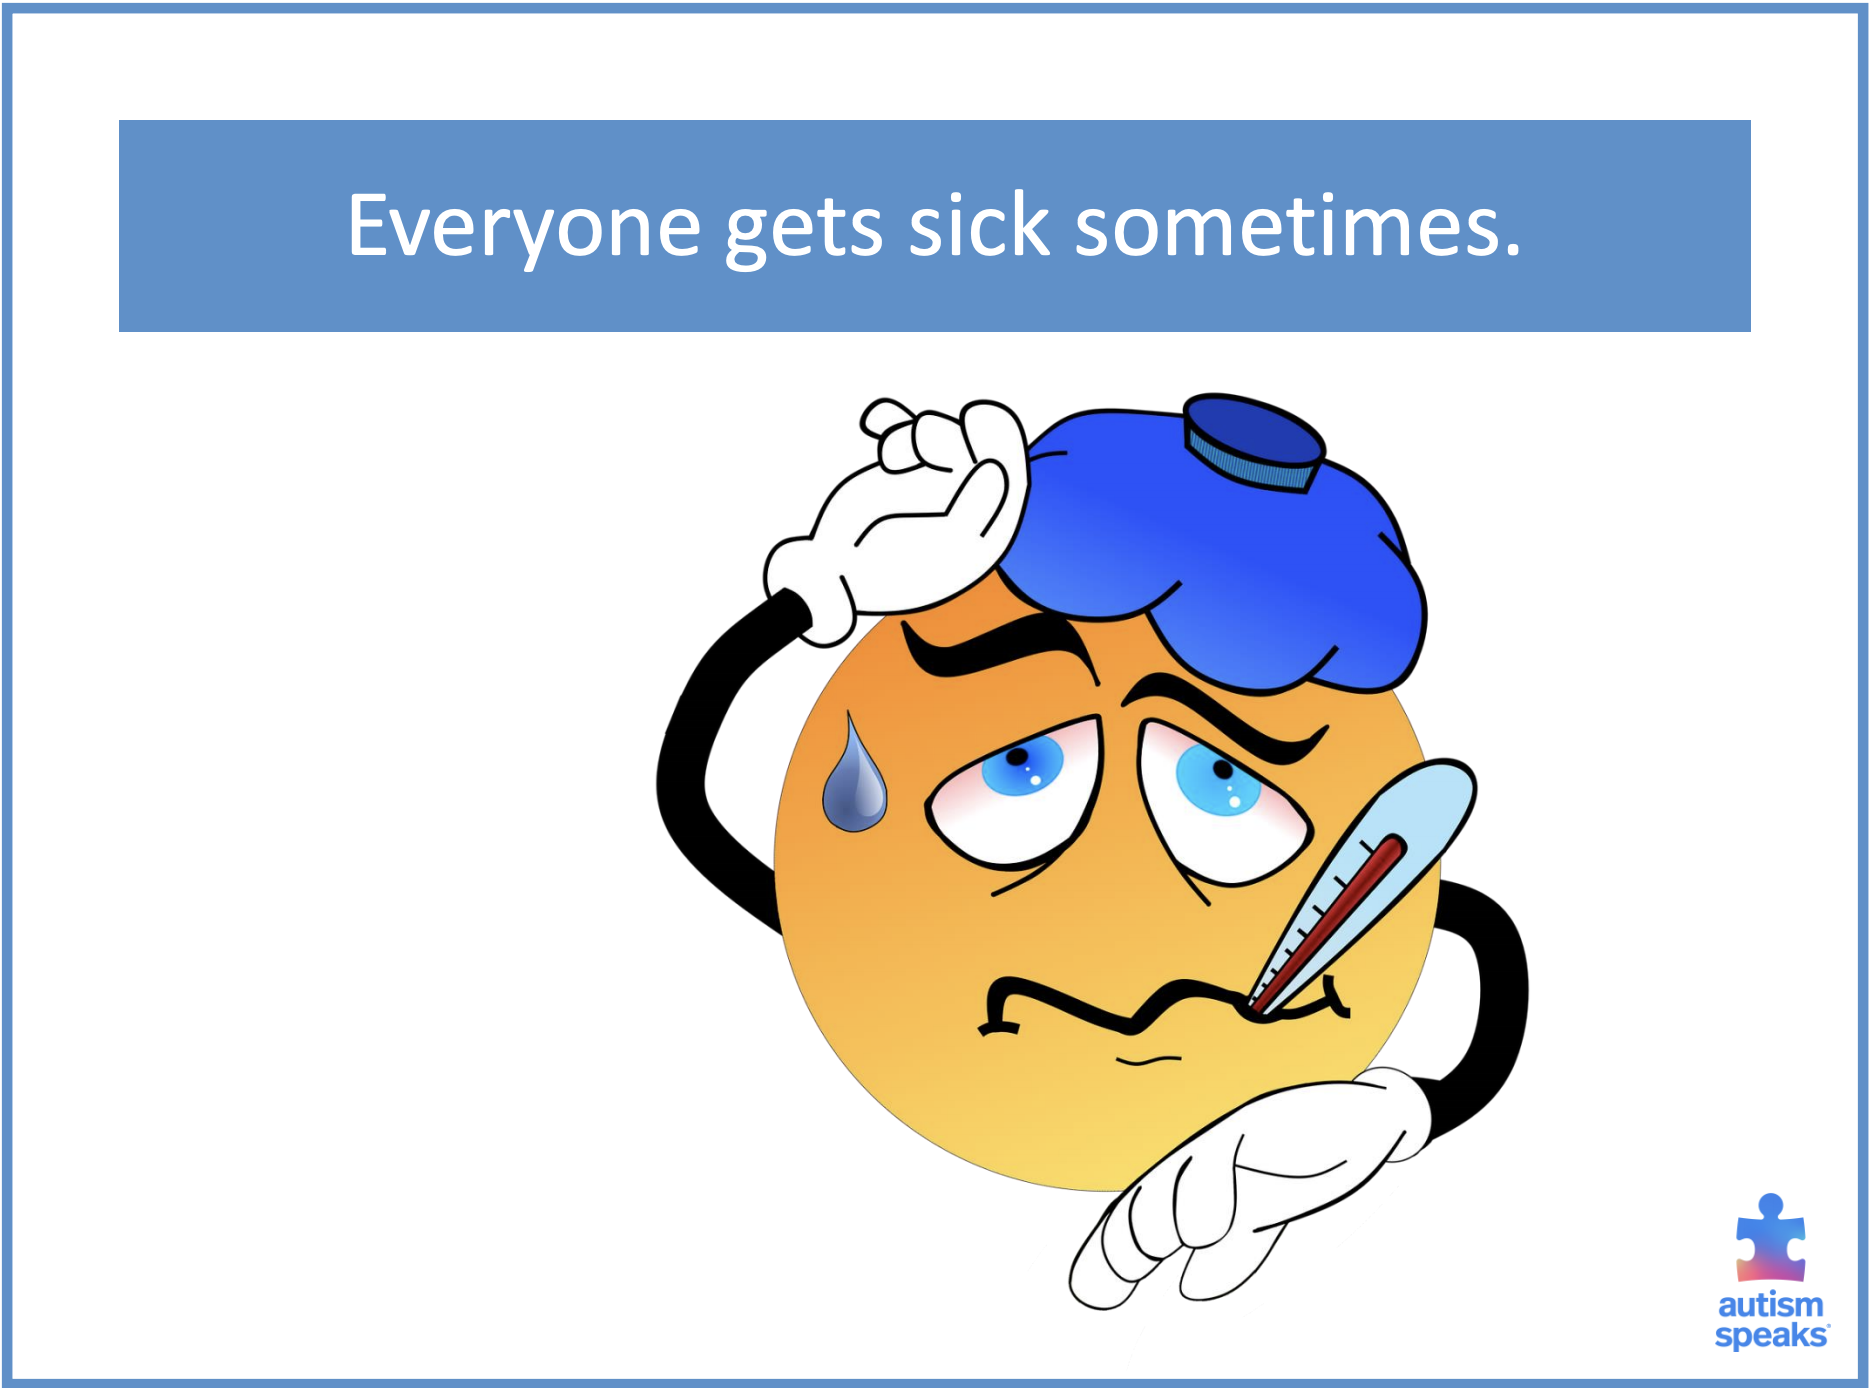 Everyone Gets Sick Sometimes